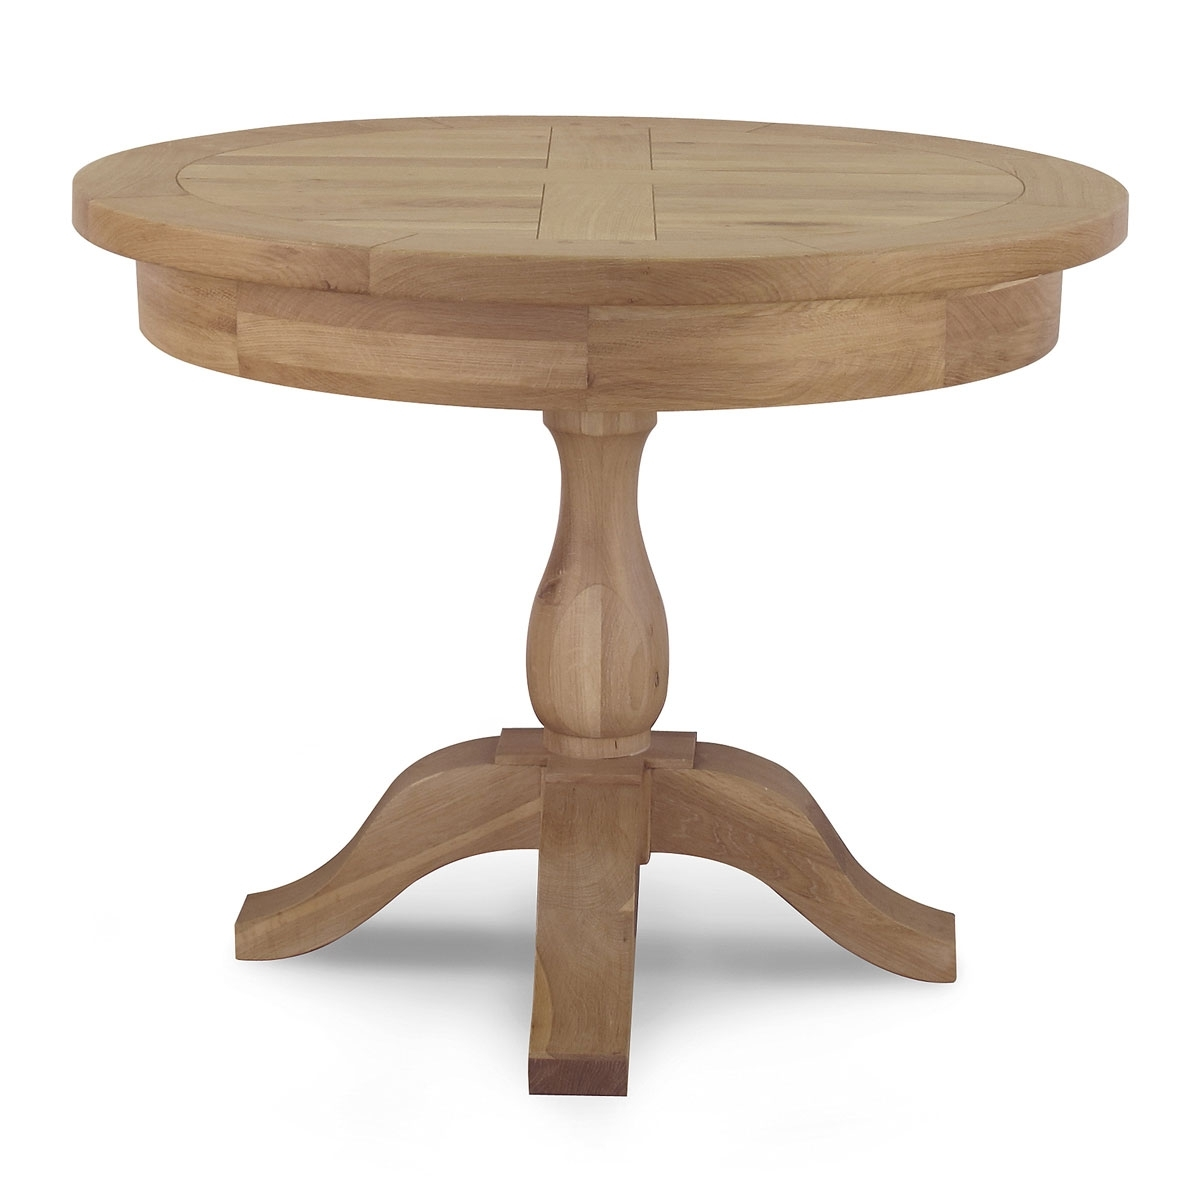 Most Recently Released Magnolia Home Top Tier Round Dining Tables In Tuscany Round Dining Table – Willis & Gambier (View 21 of 25)